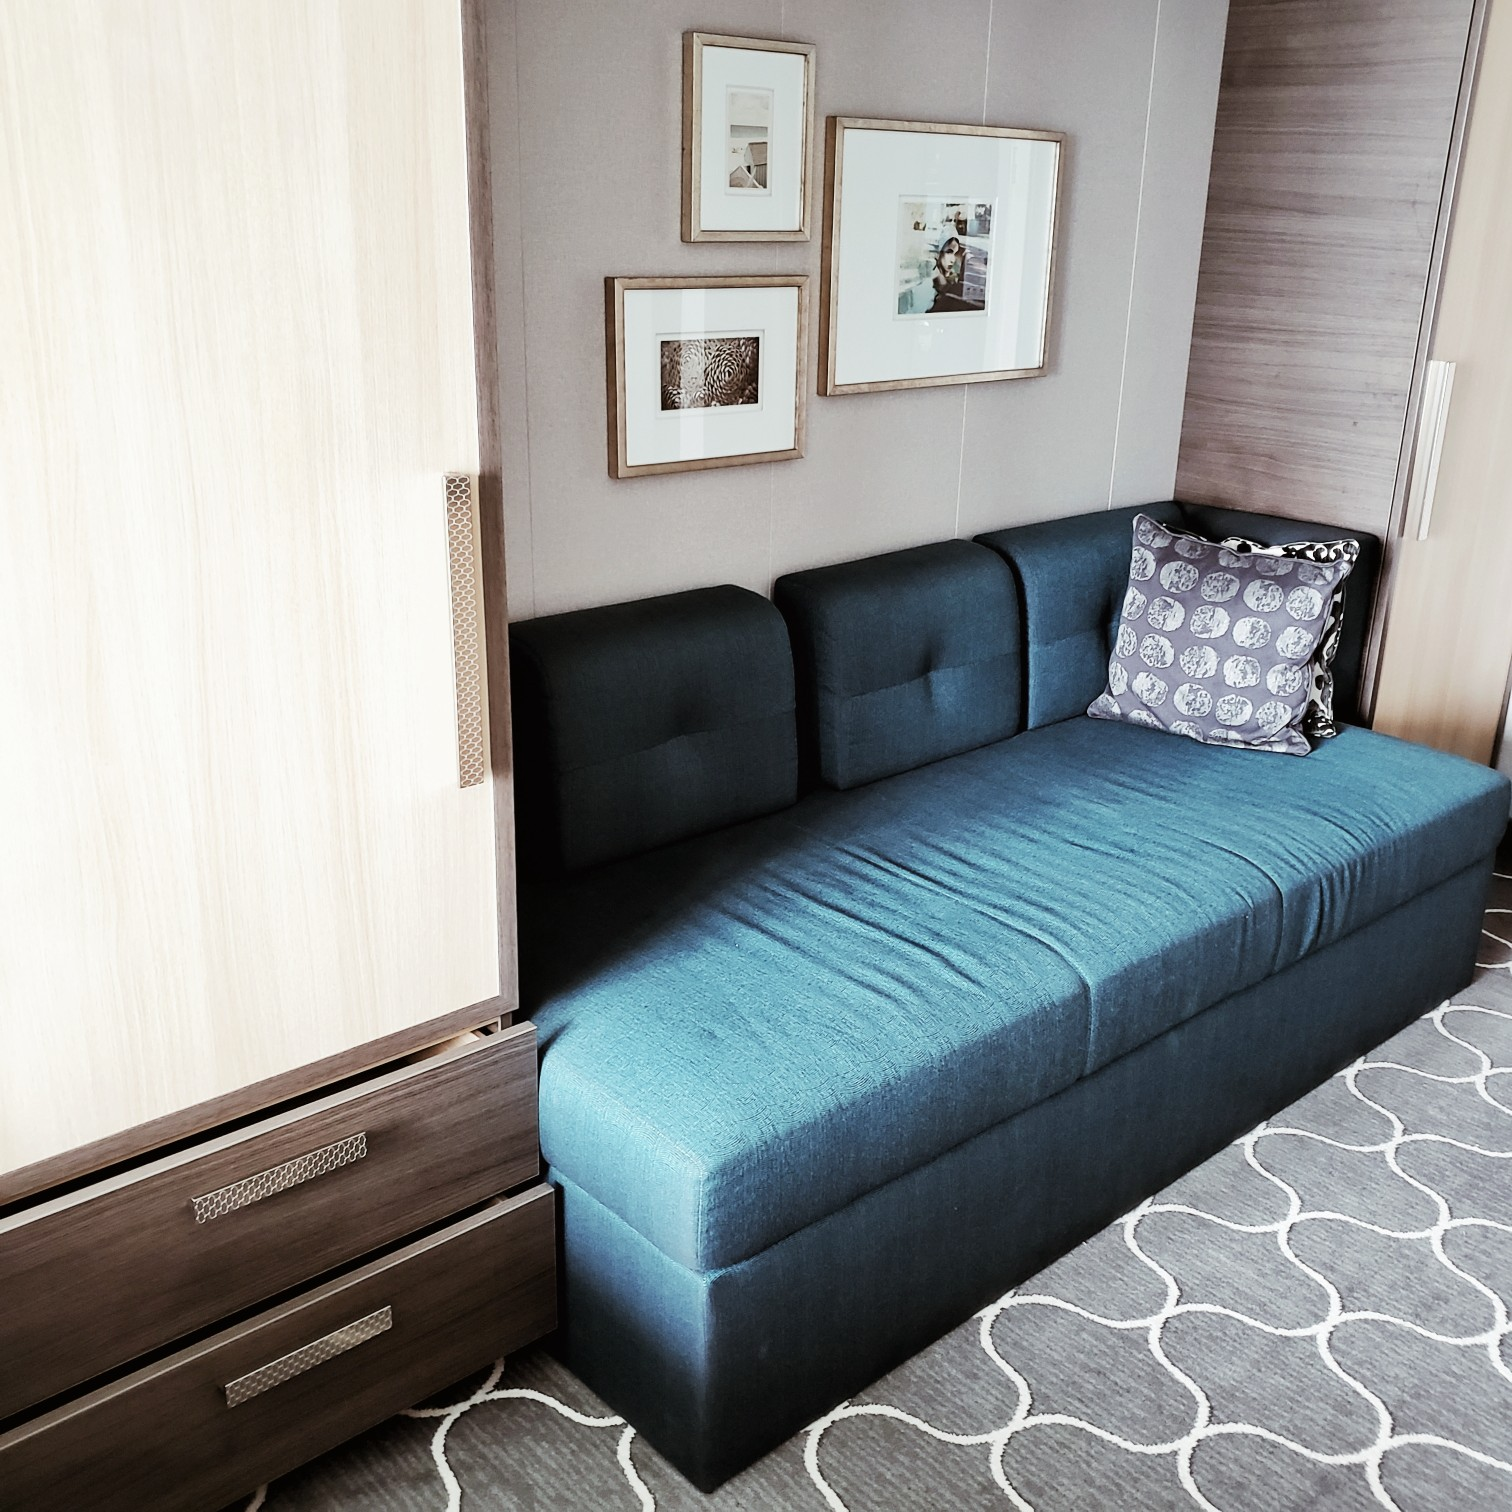 Royal Caribbean Symphony of the Seas Ocean view Stateroom Teal Sofa